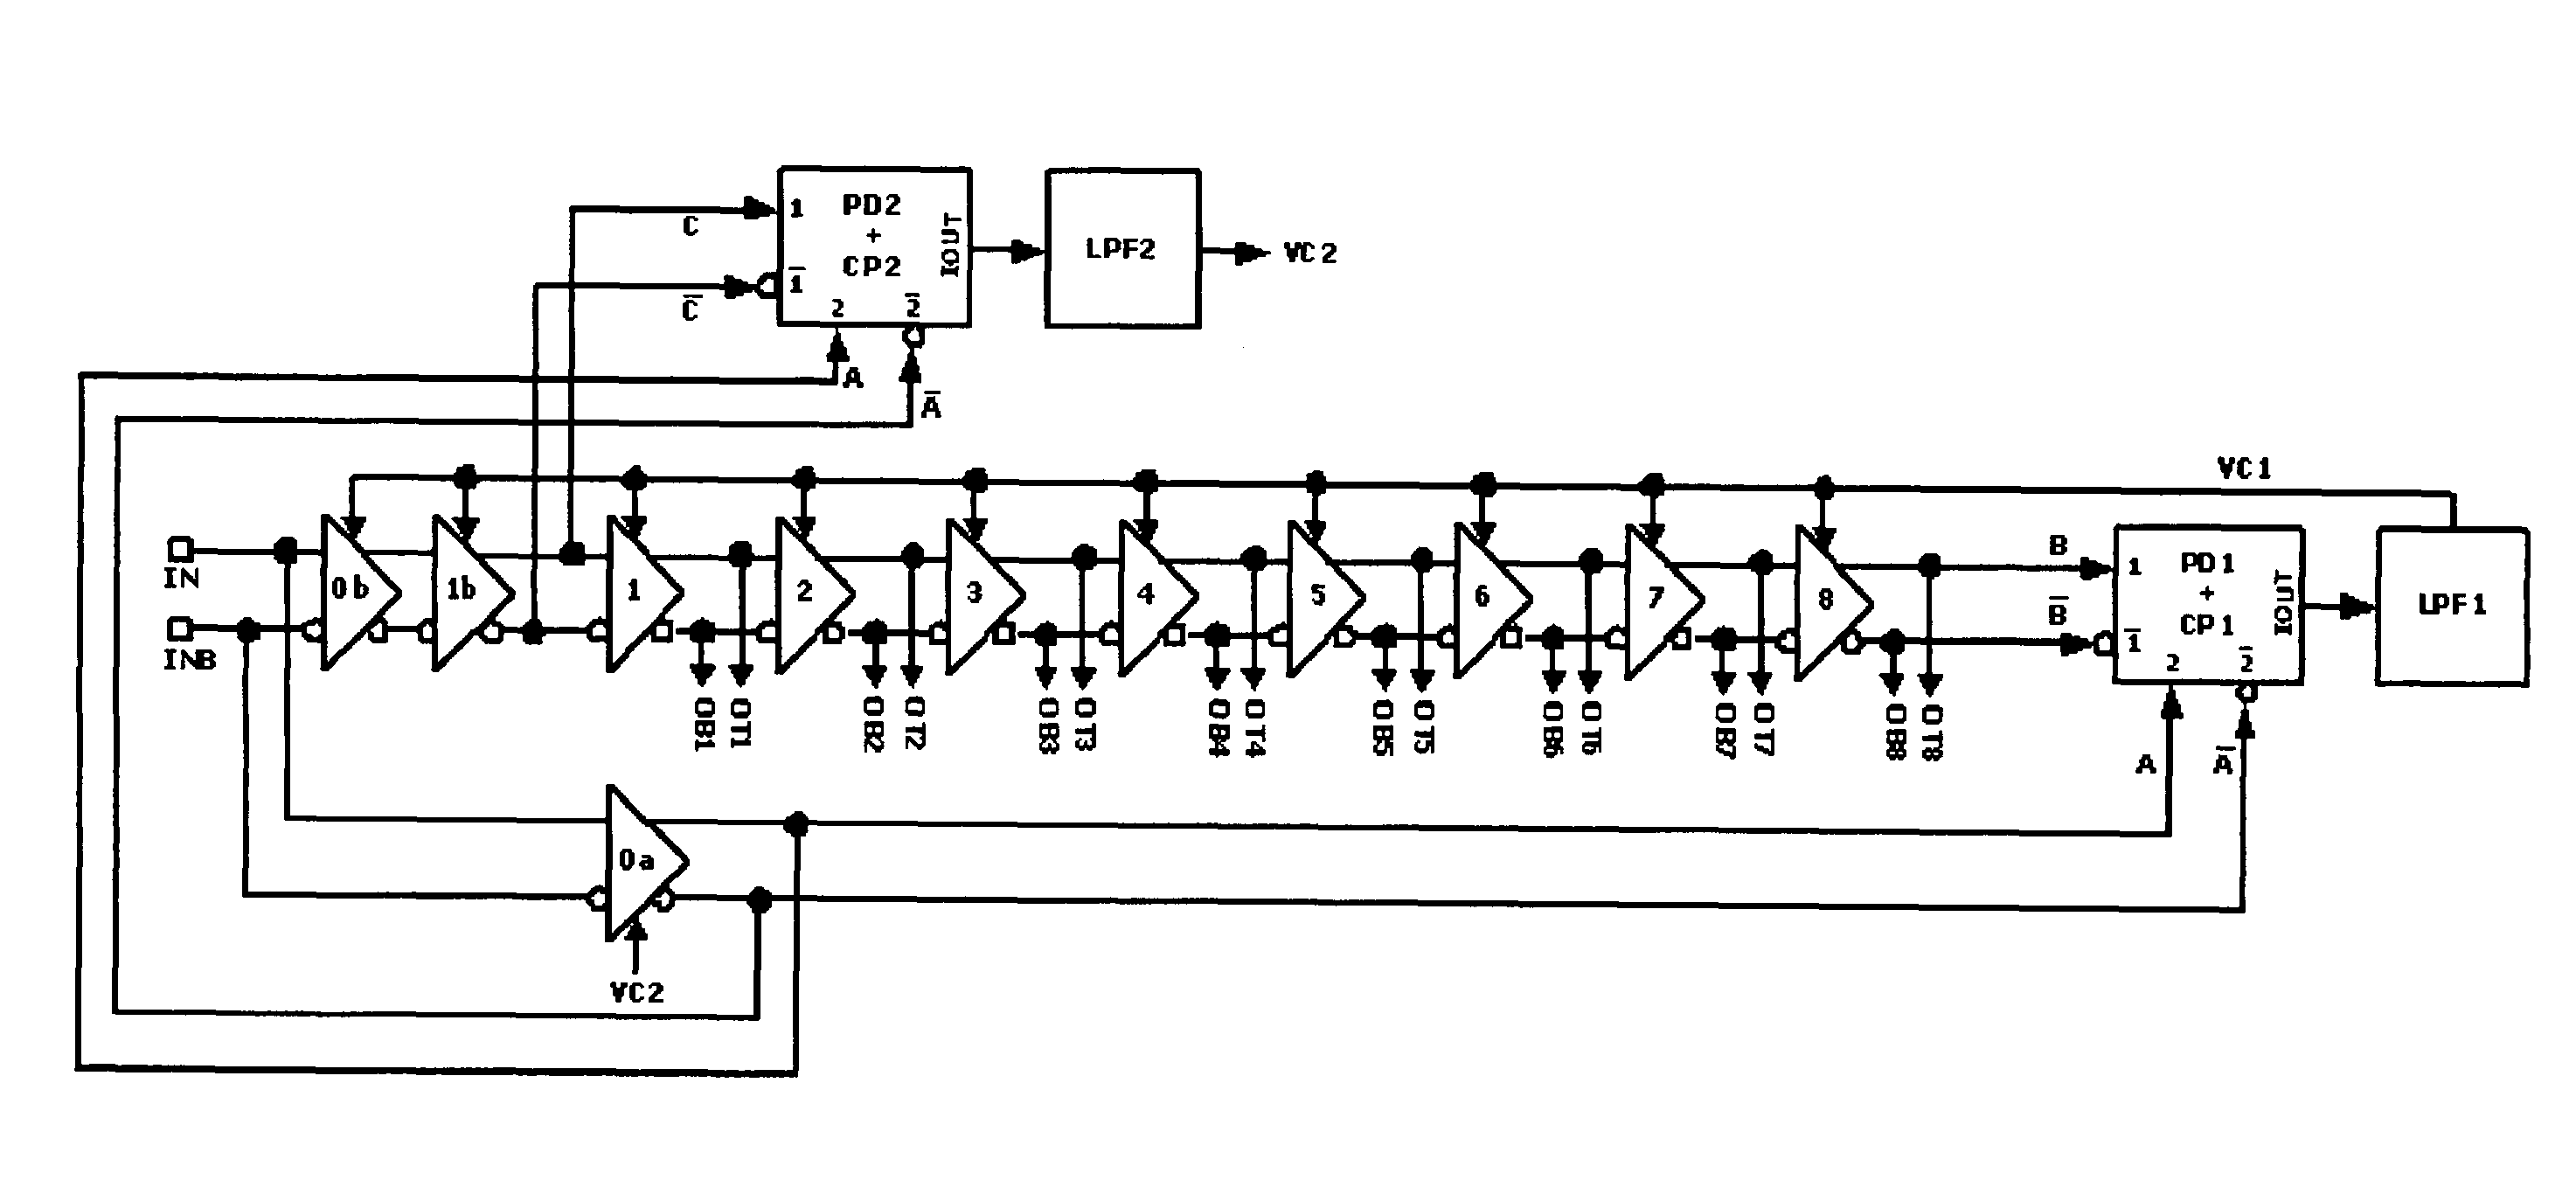 analytics for us patent no 7924074 delay control circuit and delay